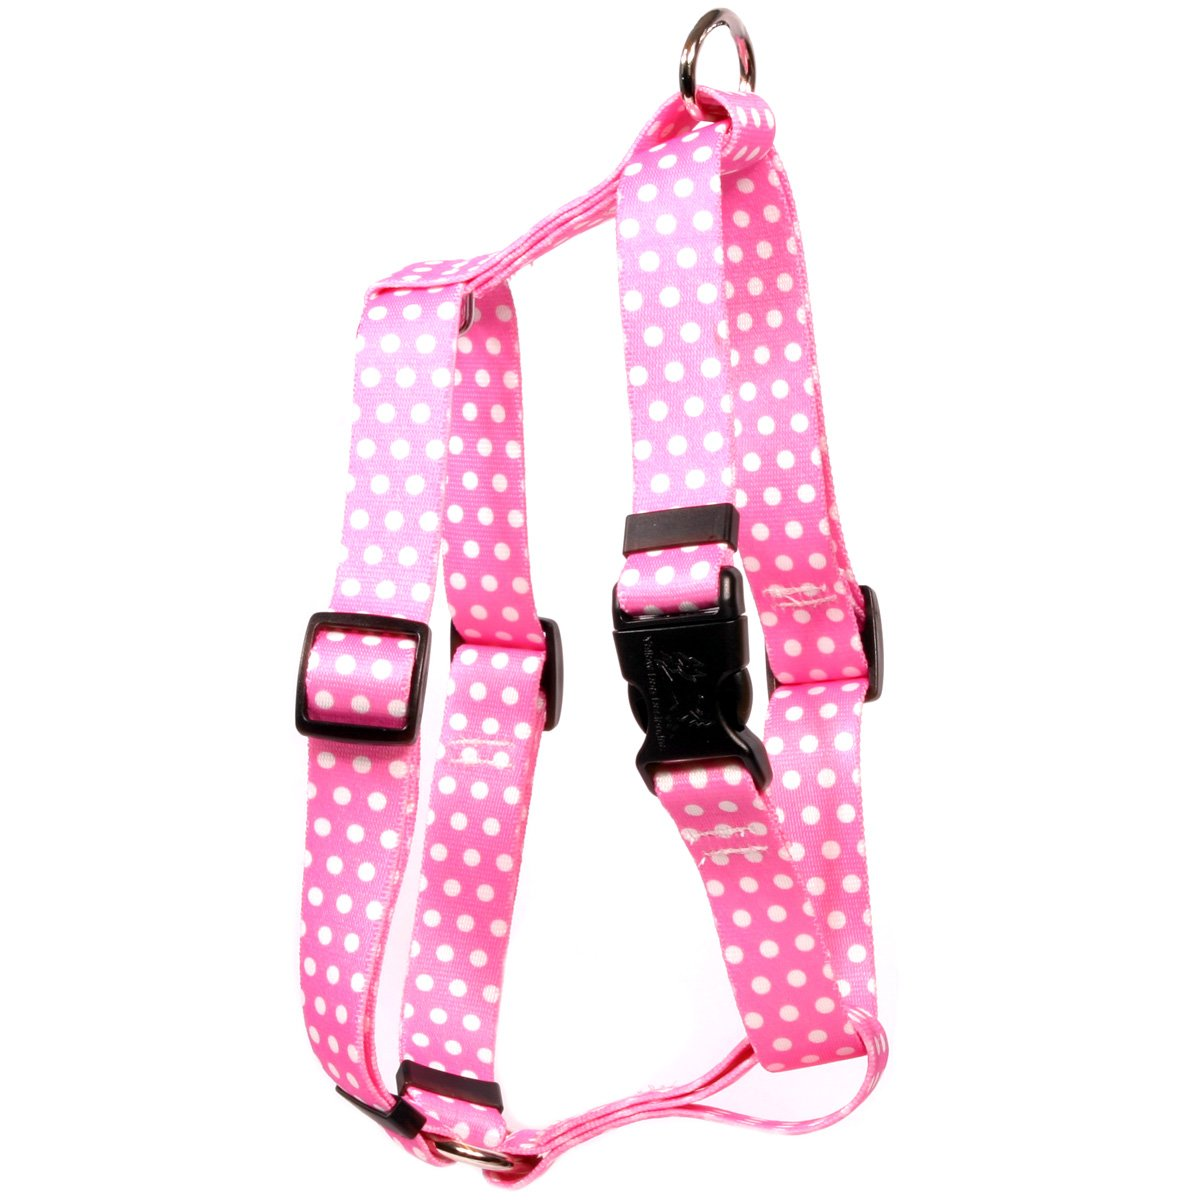 Yellow Dog Design New Pink Polka Dot Roman Style H Dog Harness, Large-1'' Wide and fits Chest of 20 to 28''